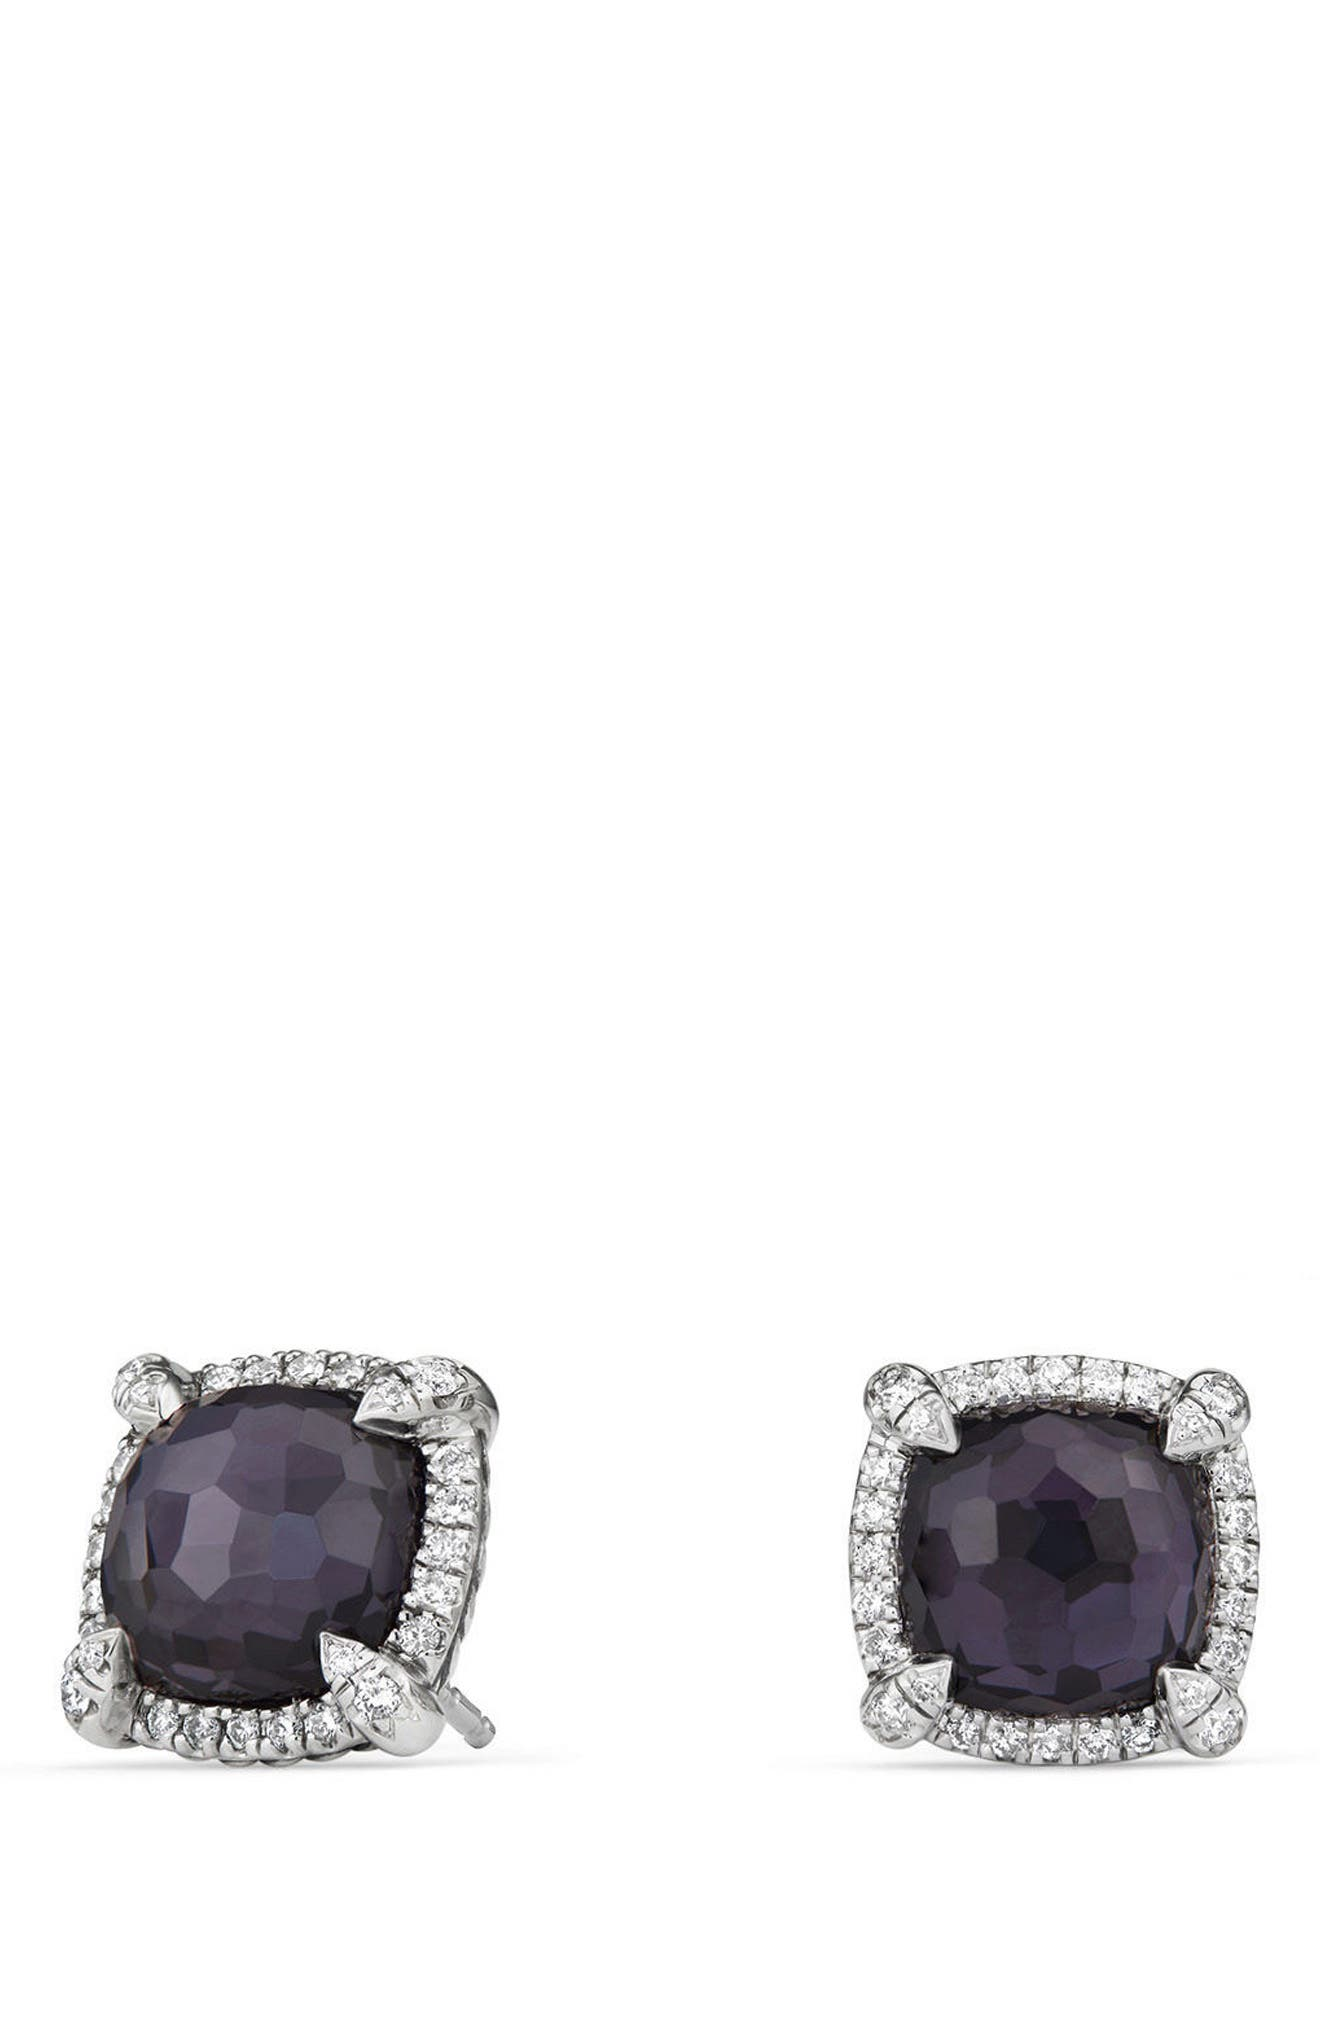 Chatelaine Pavé Bezel Earring with Black Orchid and Diamonds, 9mm,                         Main,                         color, Amethyst/ Hemetine